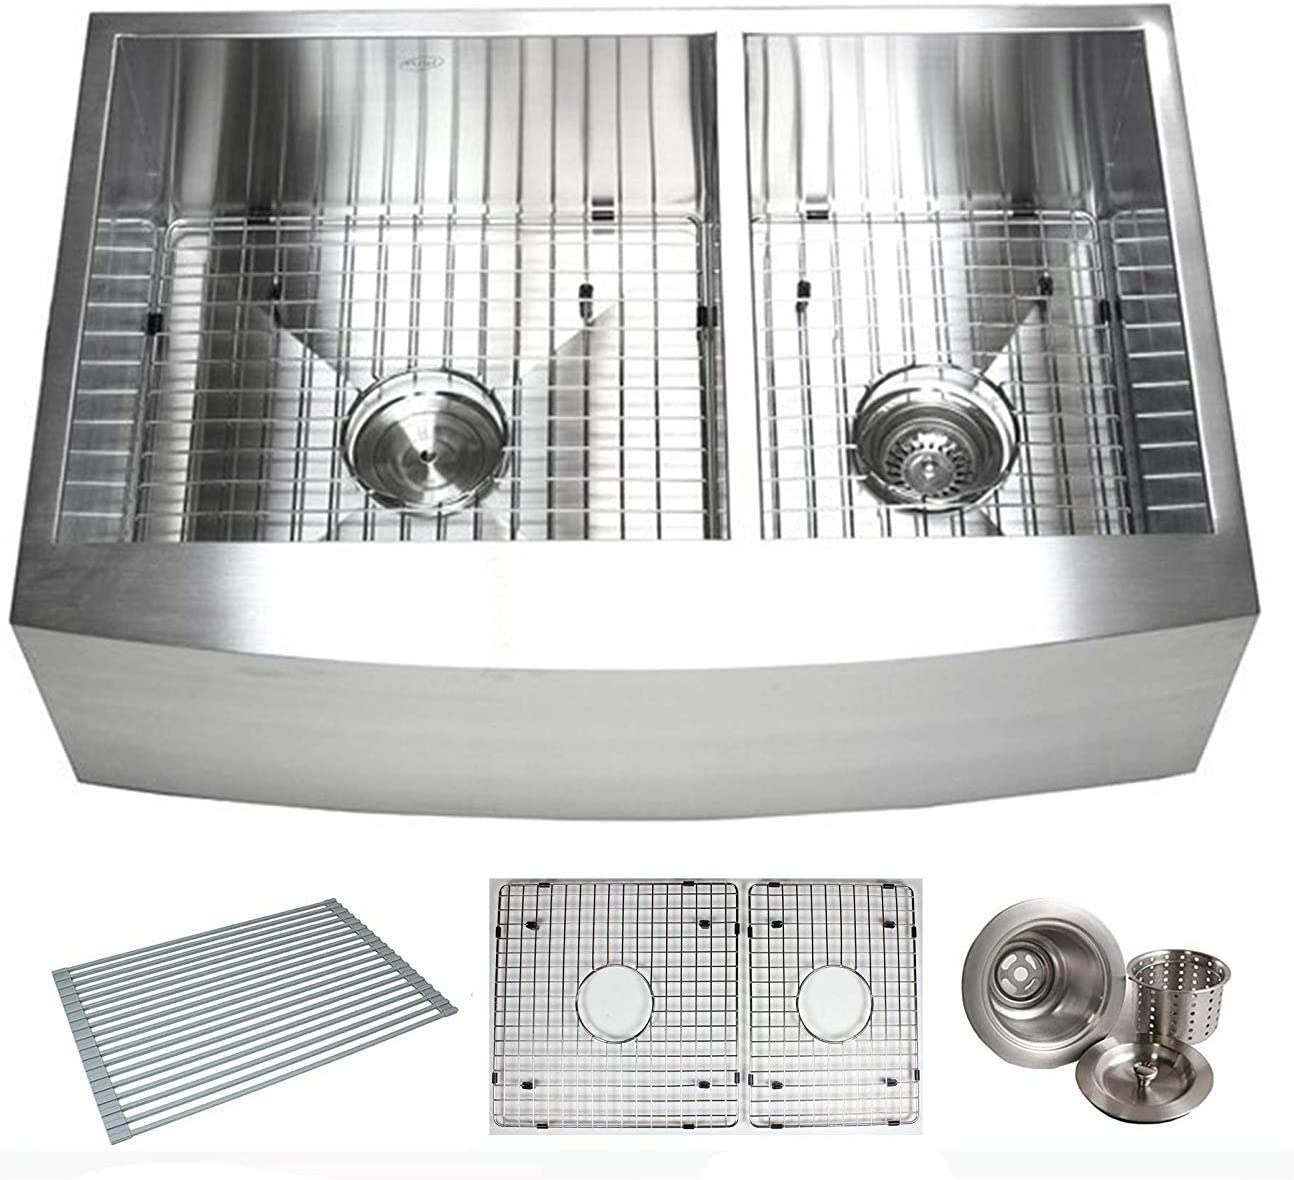 33 Inch Zero Radius Design 16 6040 Stainless S Double Popular Courier shipping free shipping brand in the world Bowl Gauge